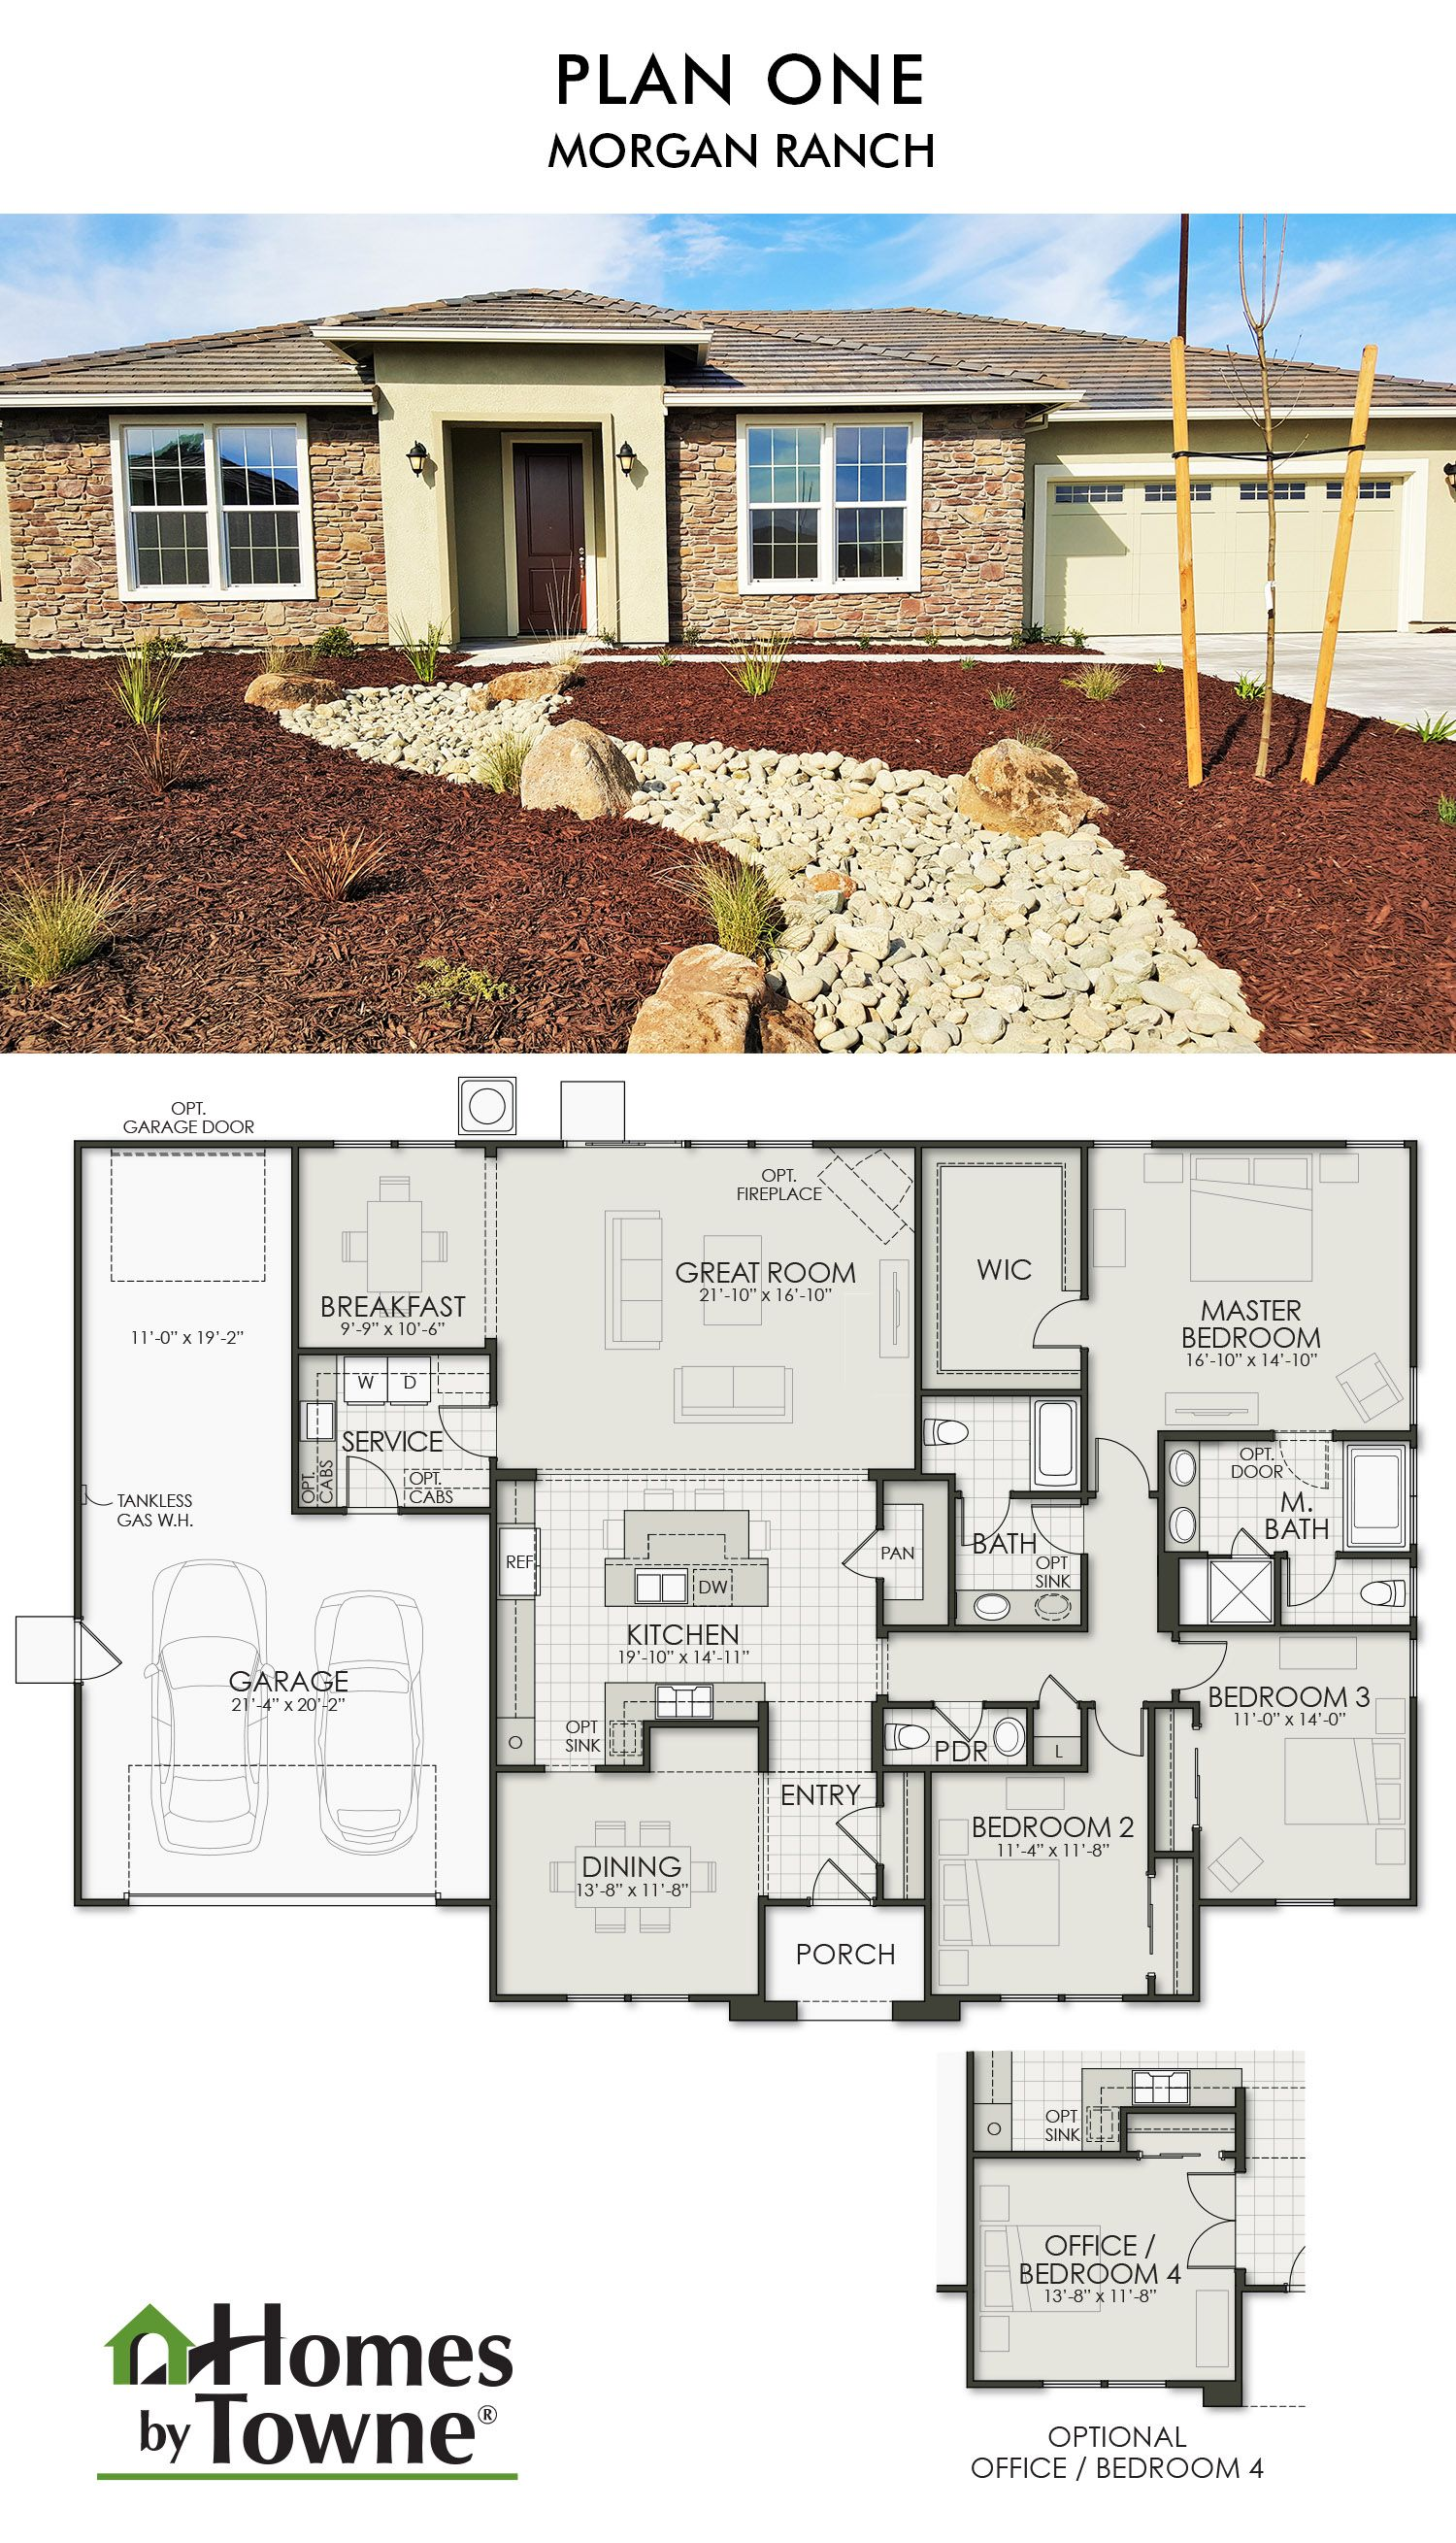 Plan one morgan ranch roseville california homes by towne for California ranch floor plans